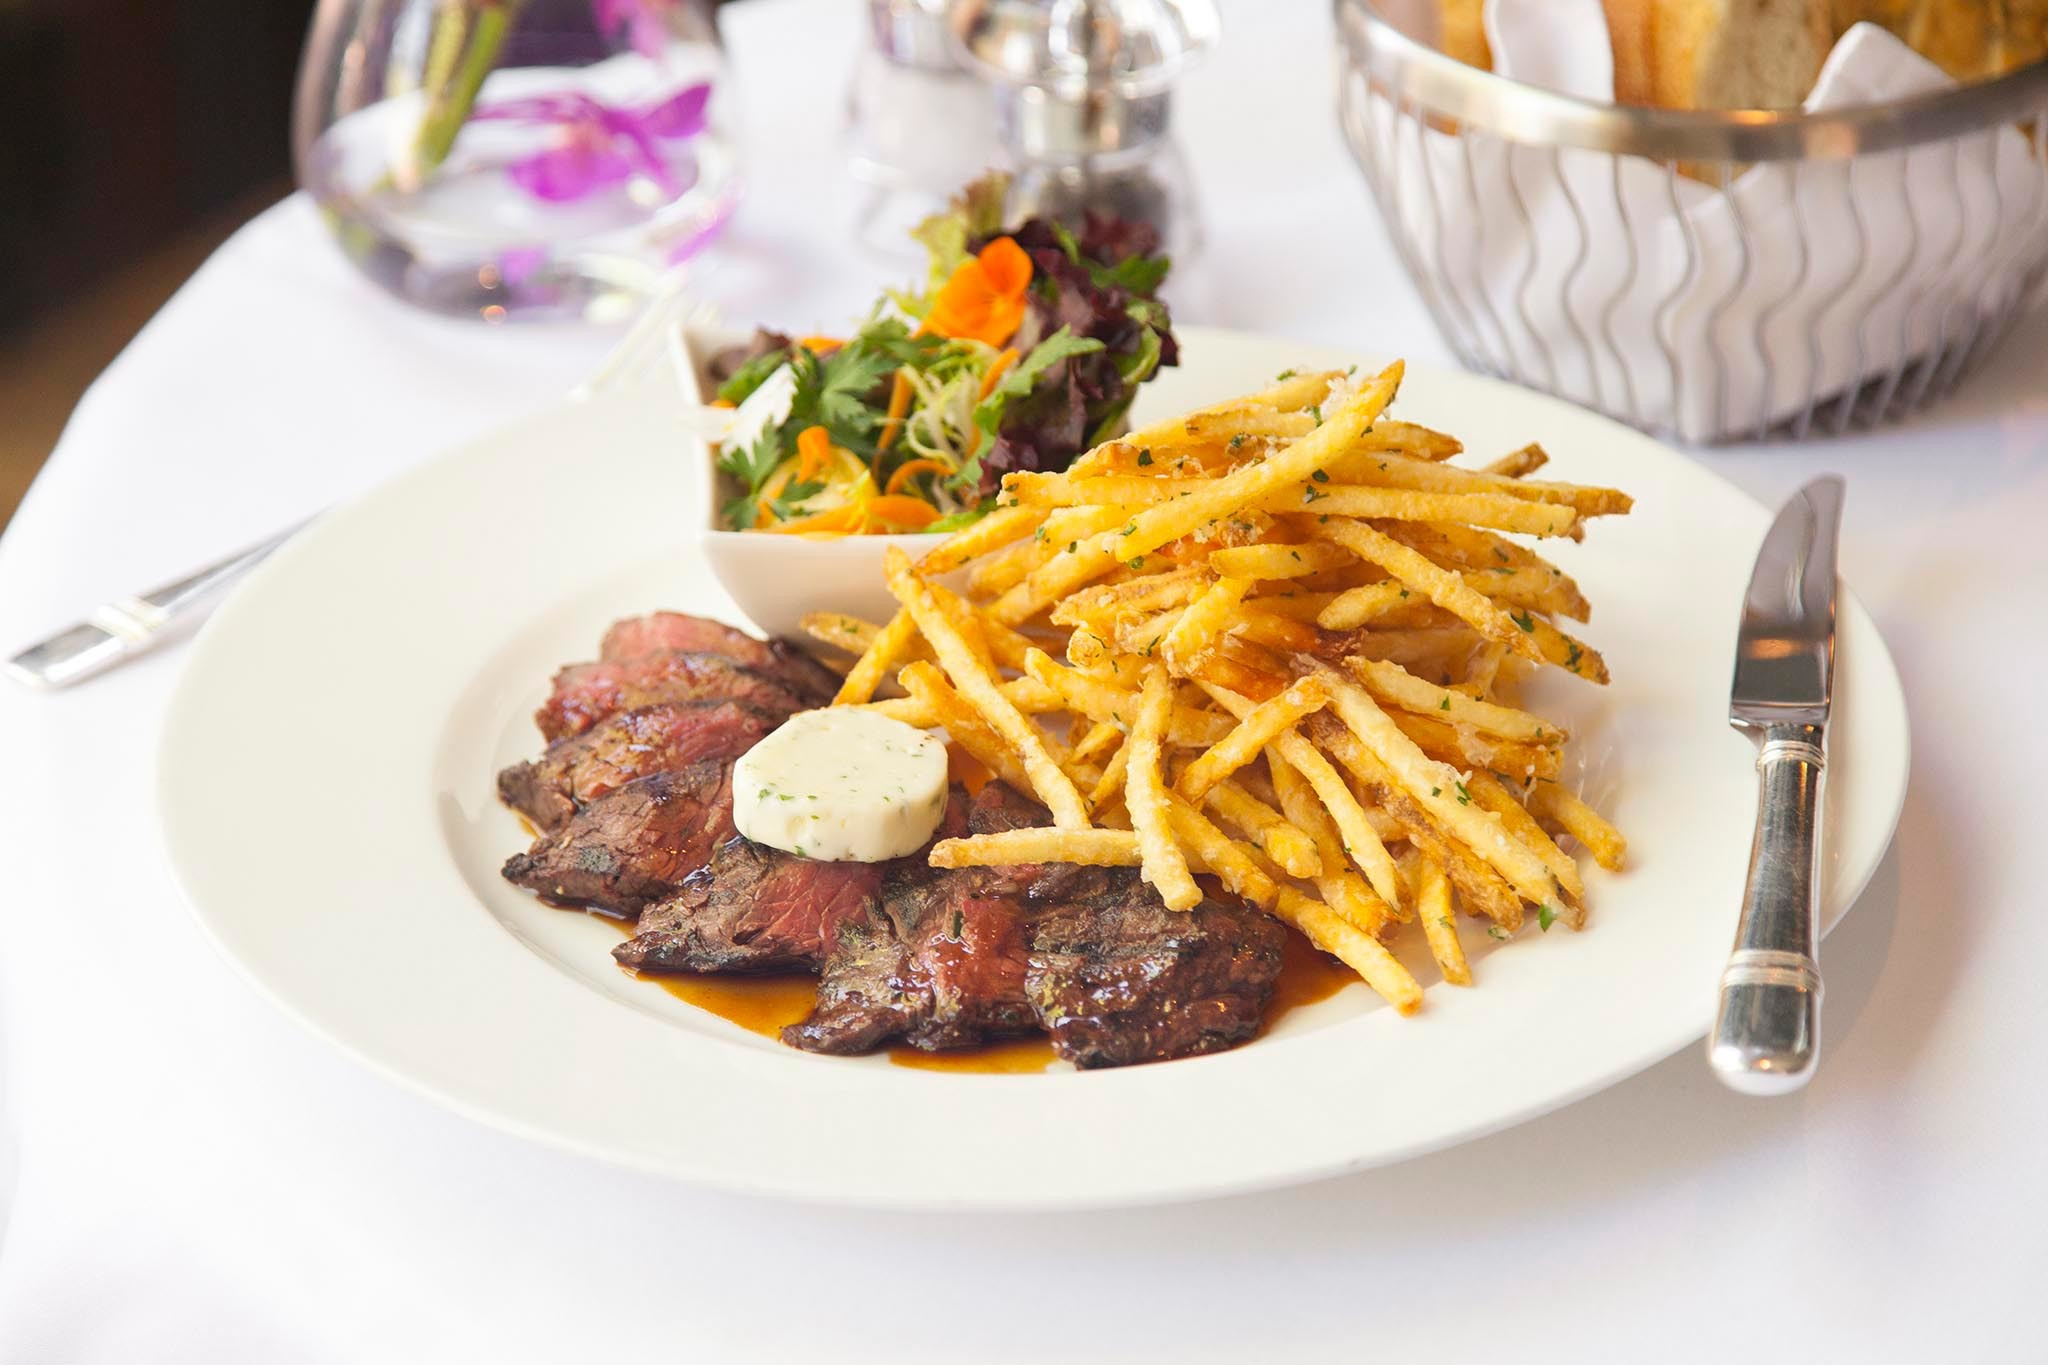 Steak frites at The Polo Lounge